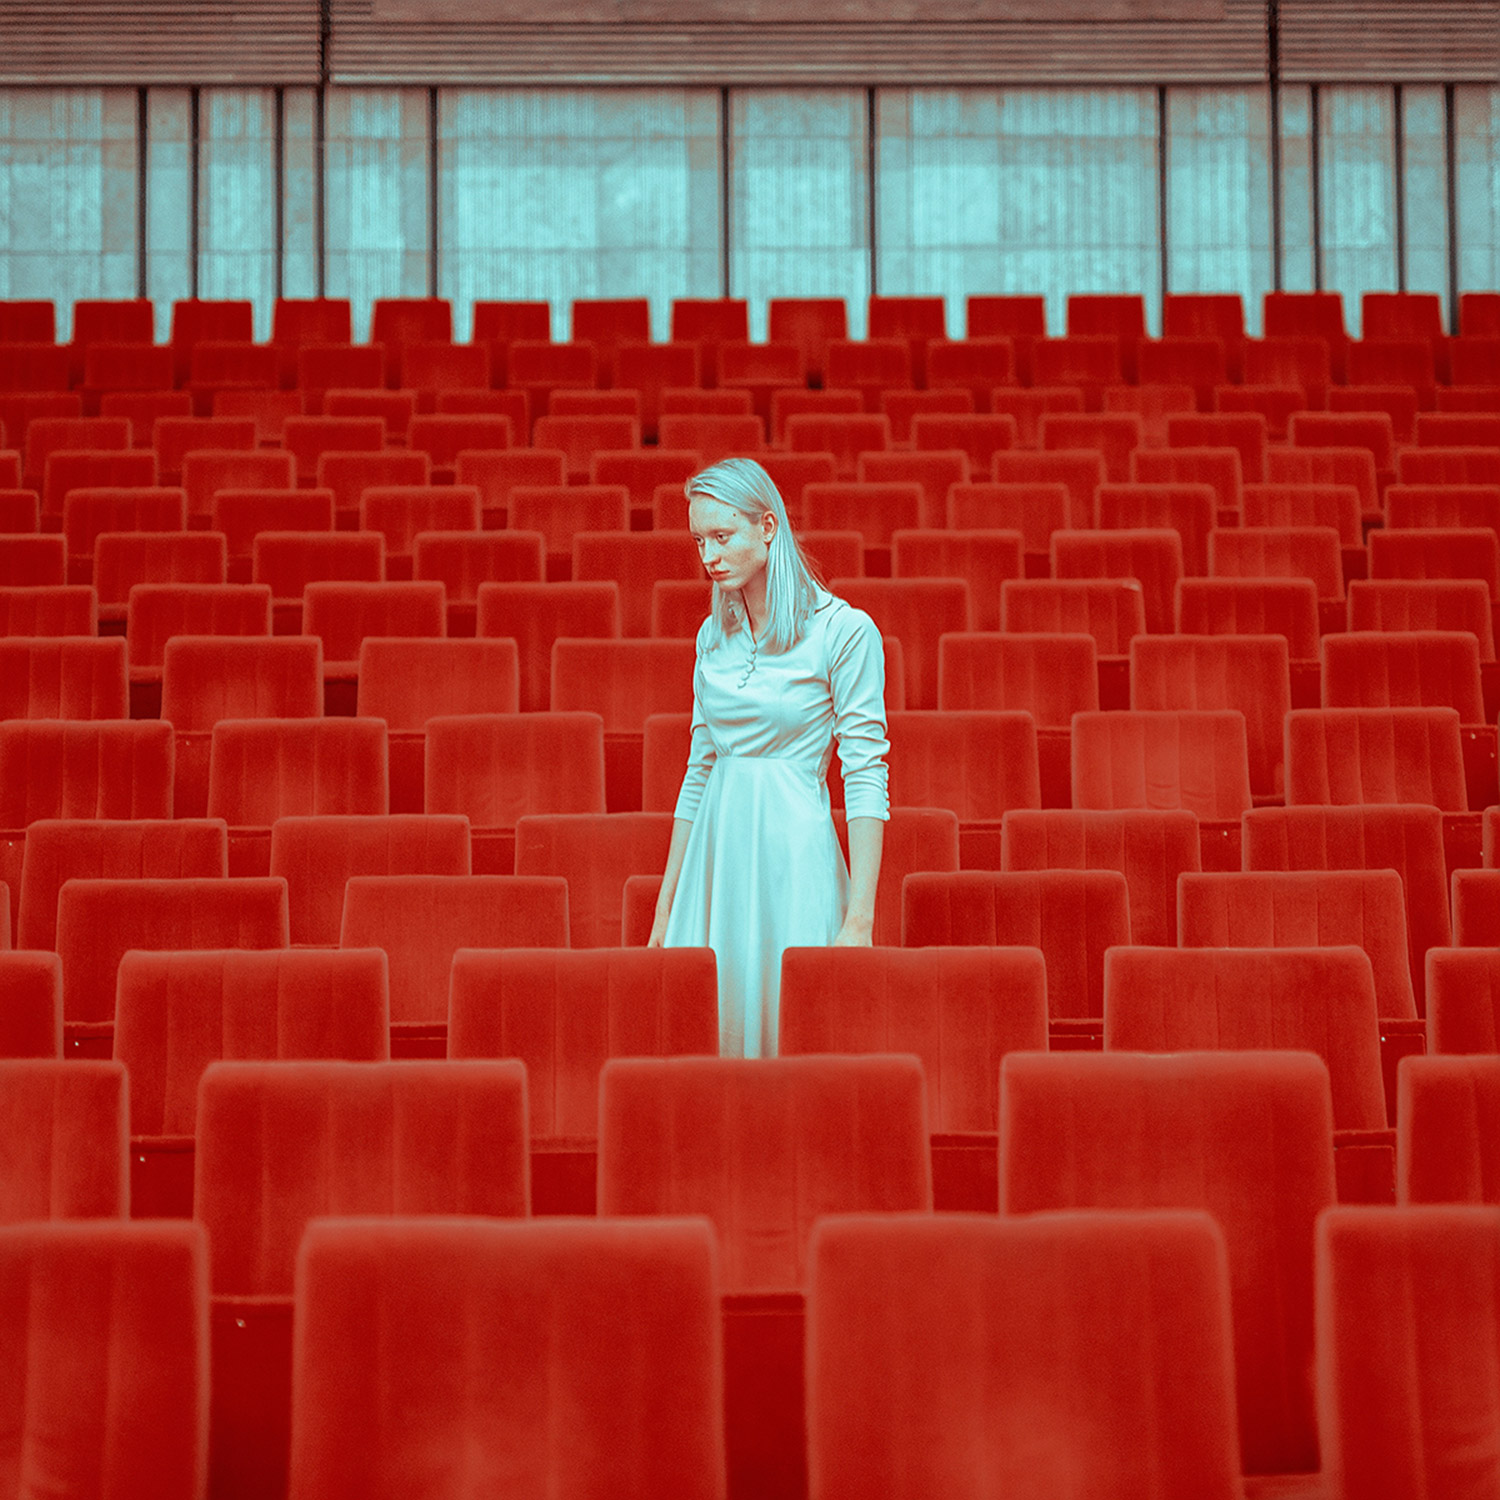 Maria Svarbova - Human Space, model with red chairs